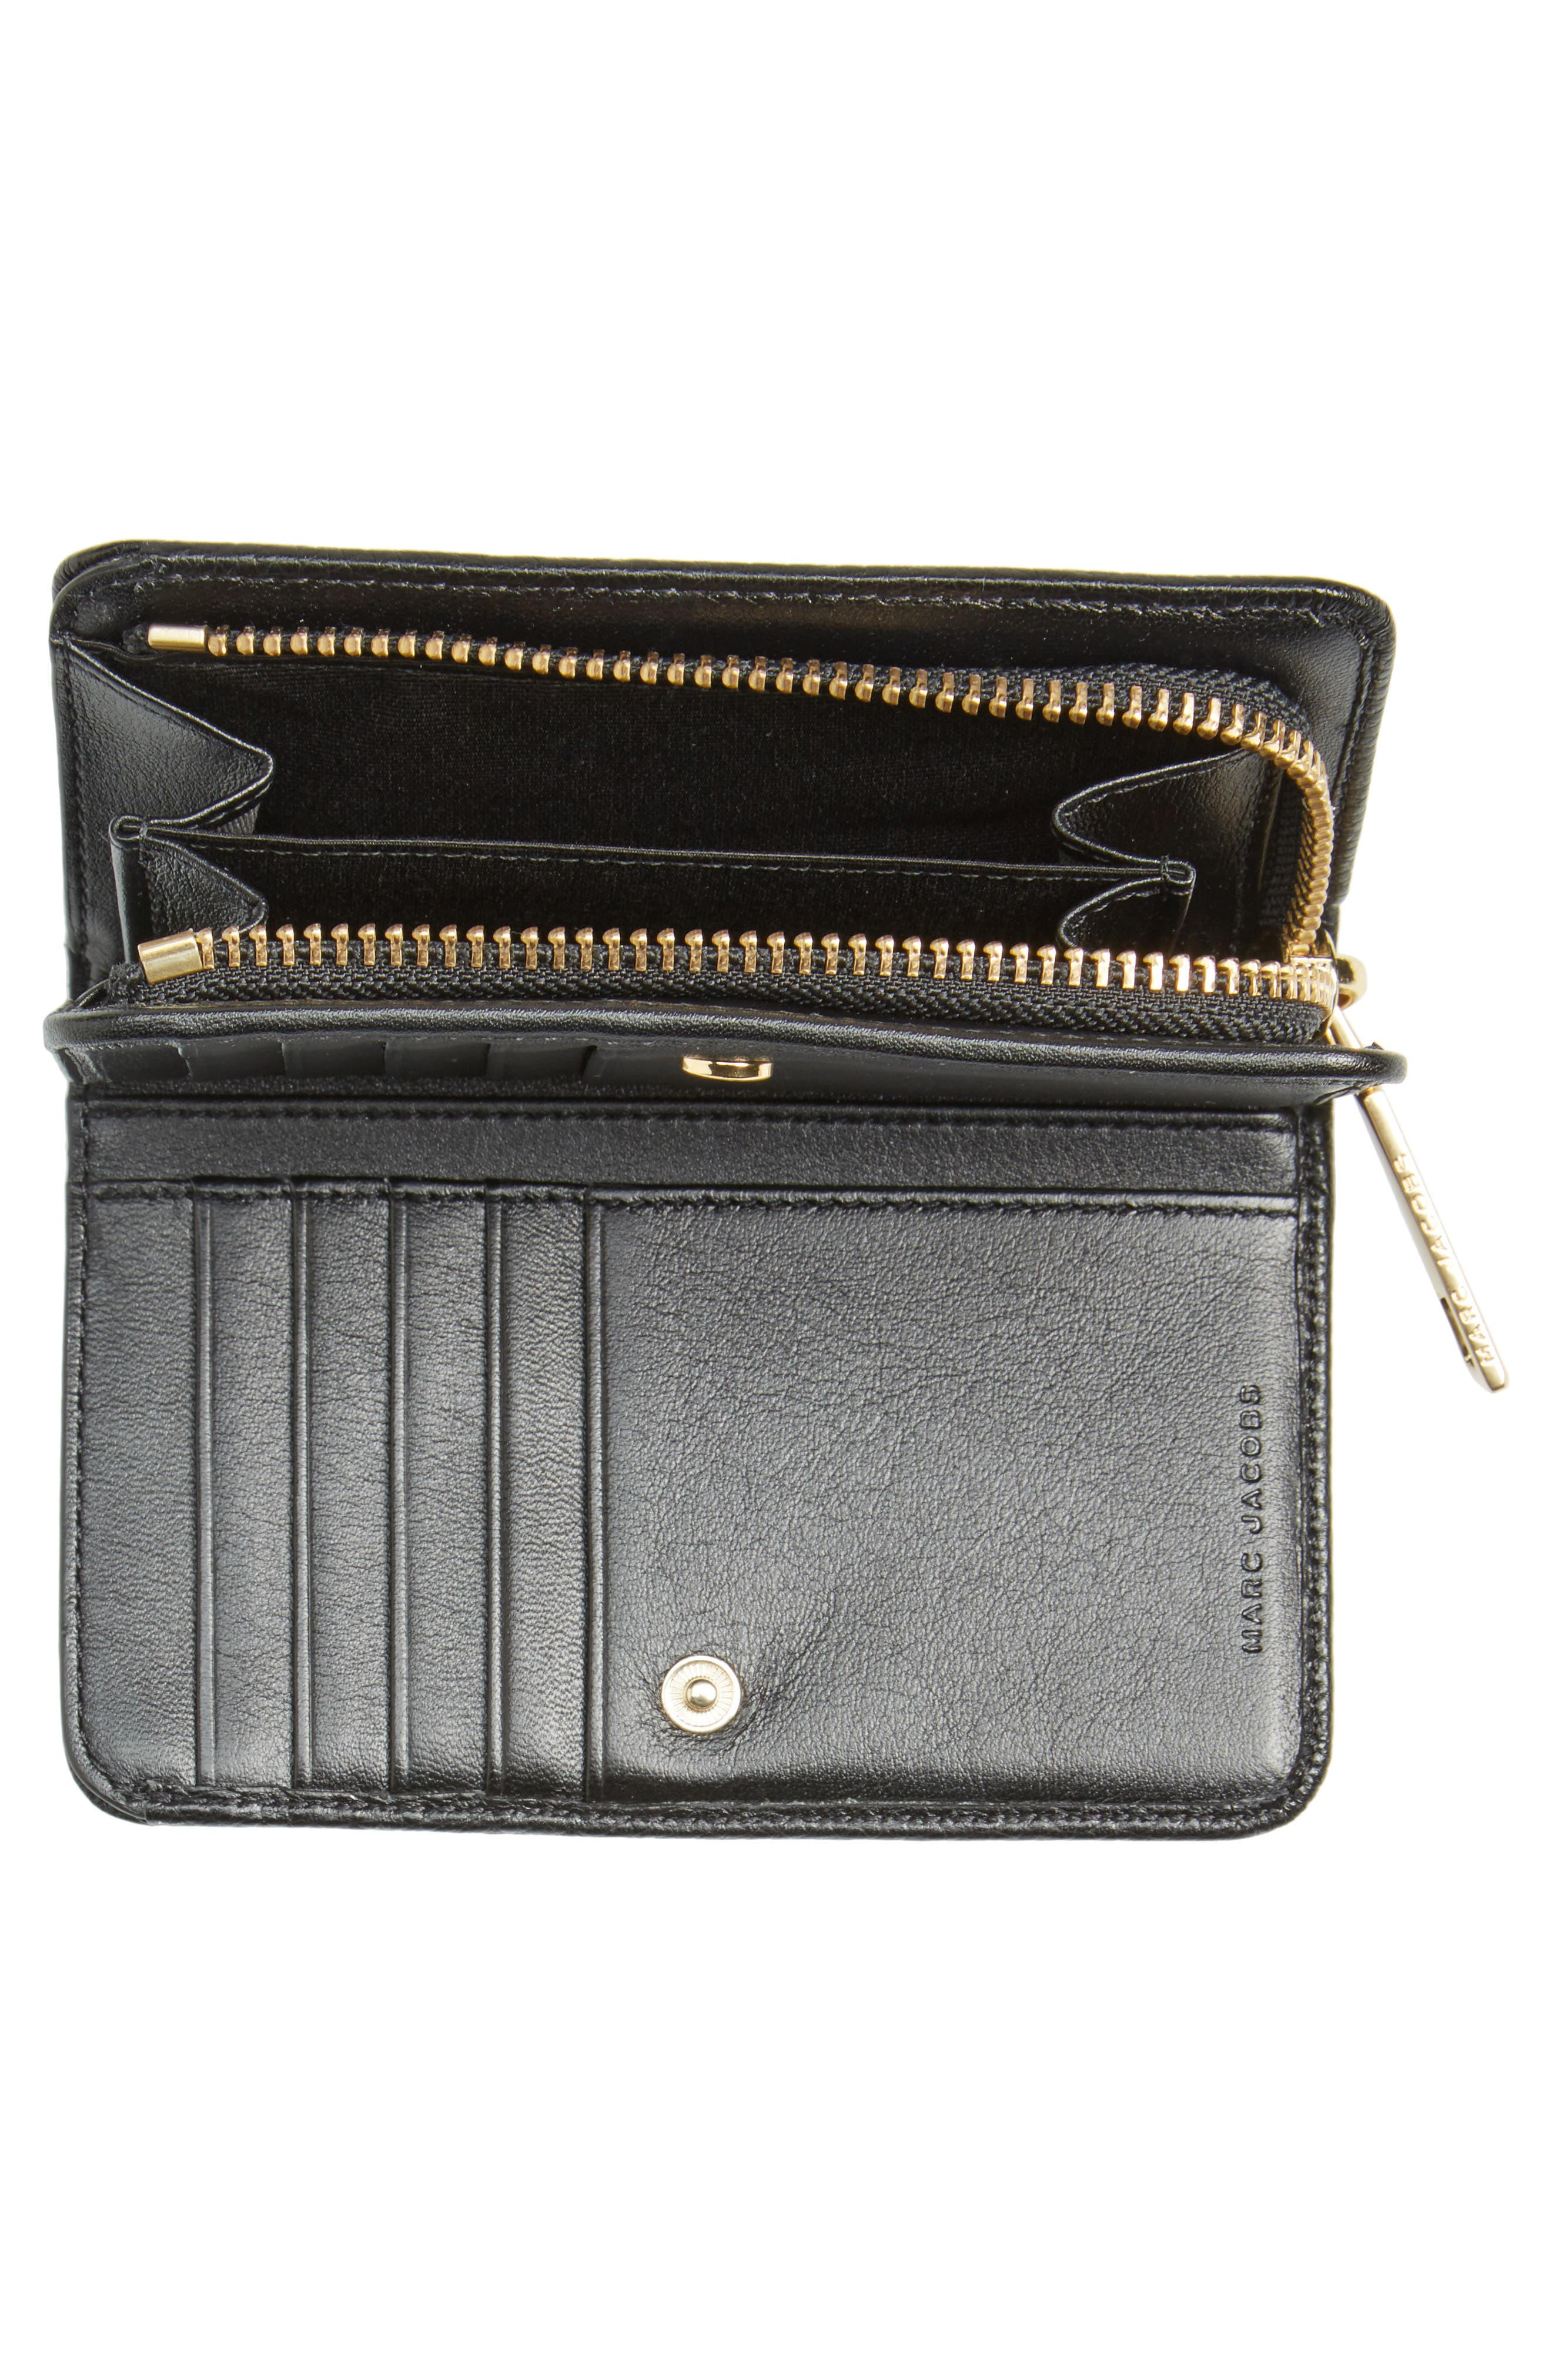 Gotham Compact Leather Wallet,                             Alternate thumbnail 4, color,                             002